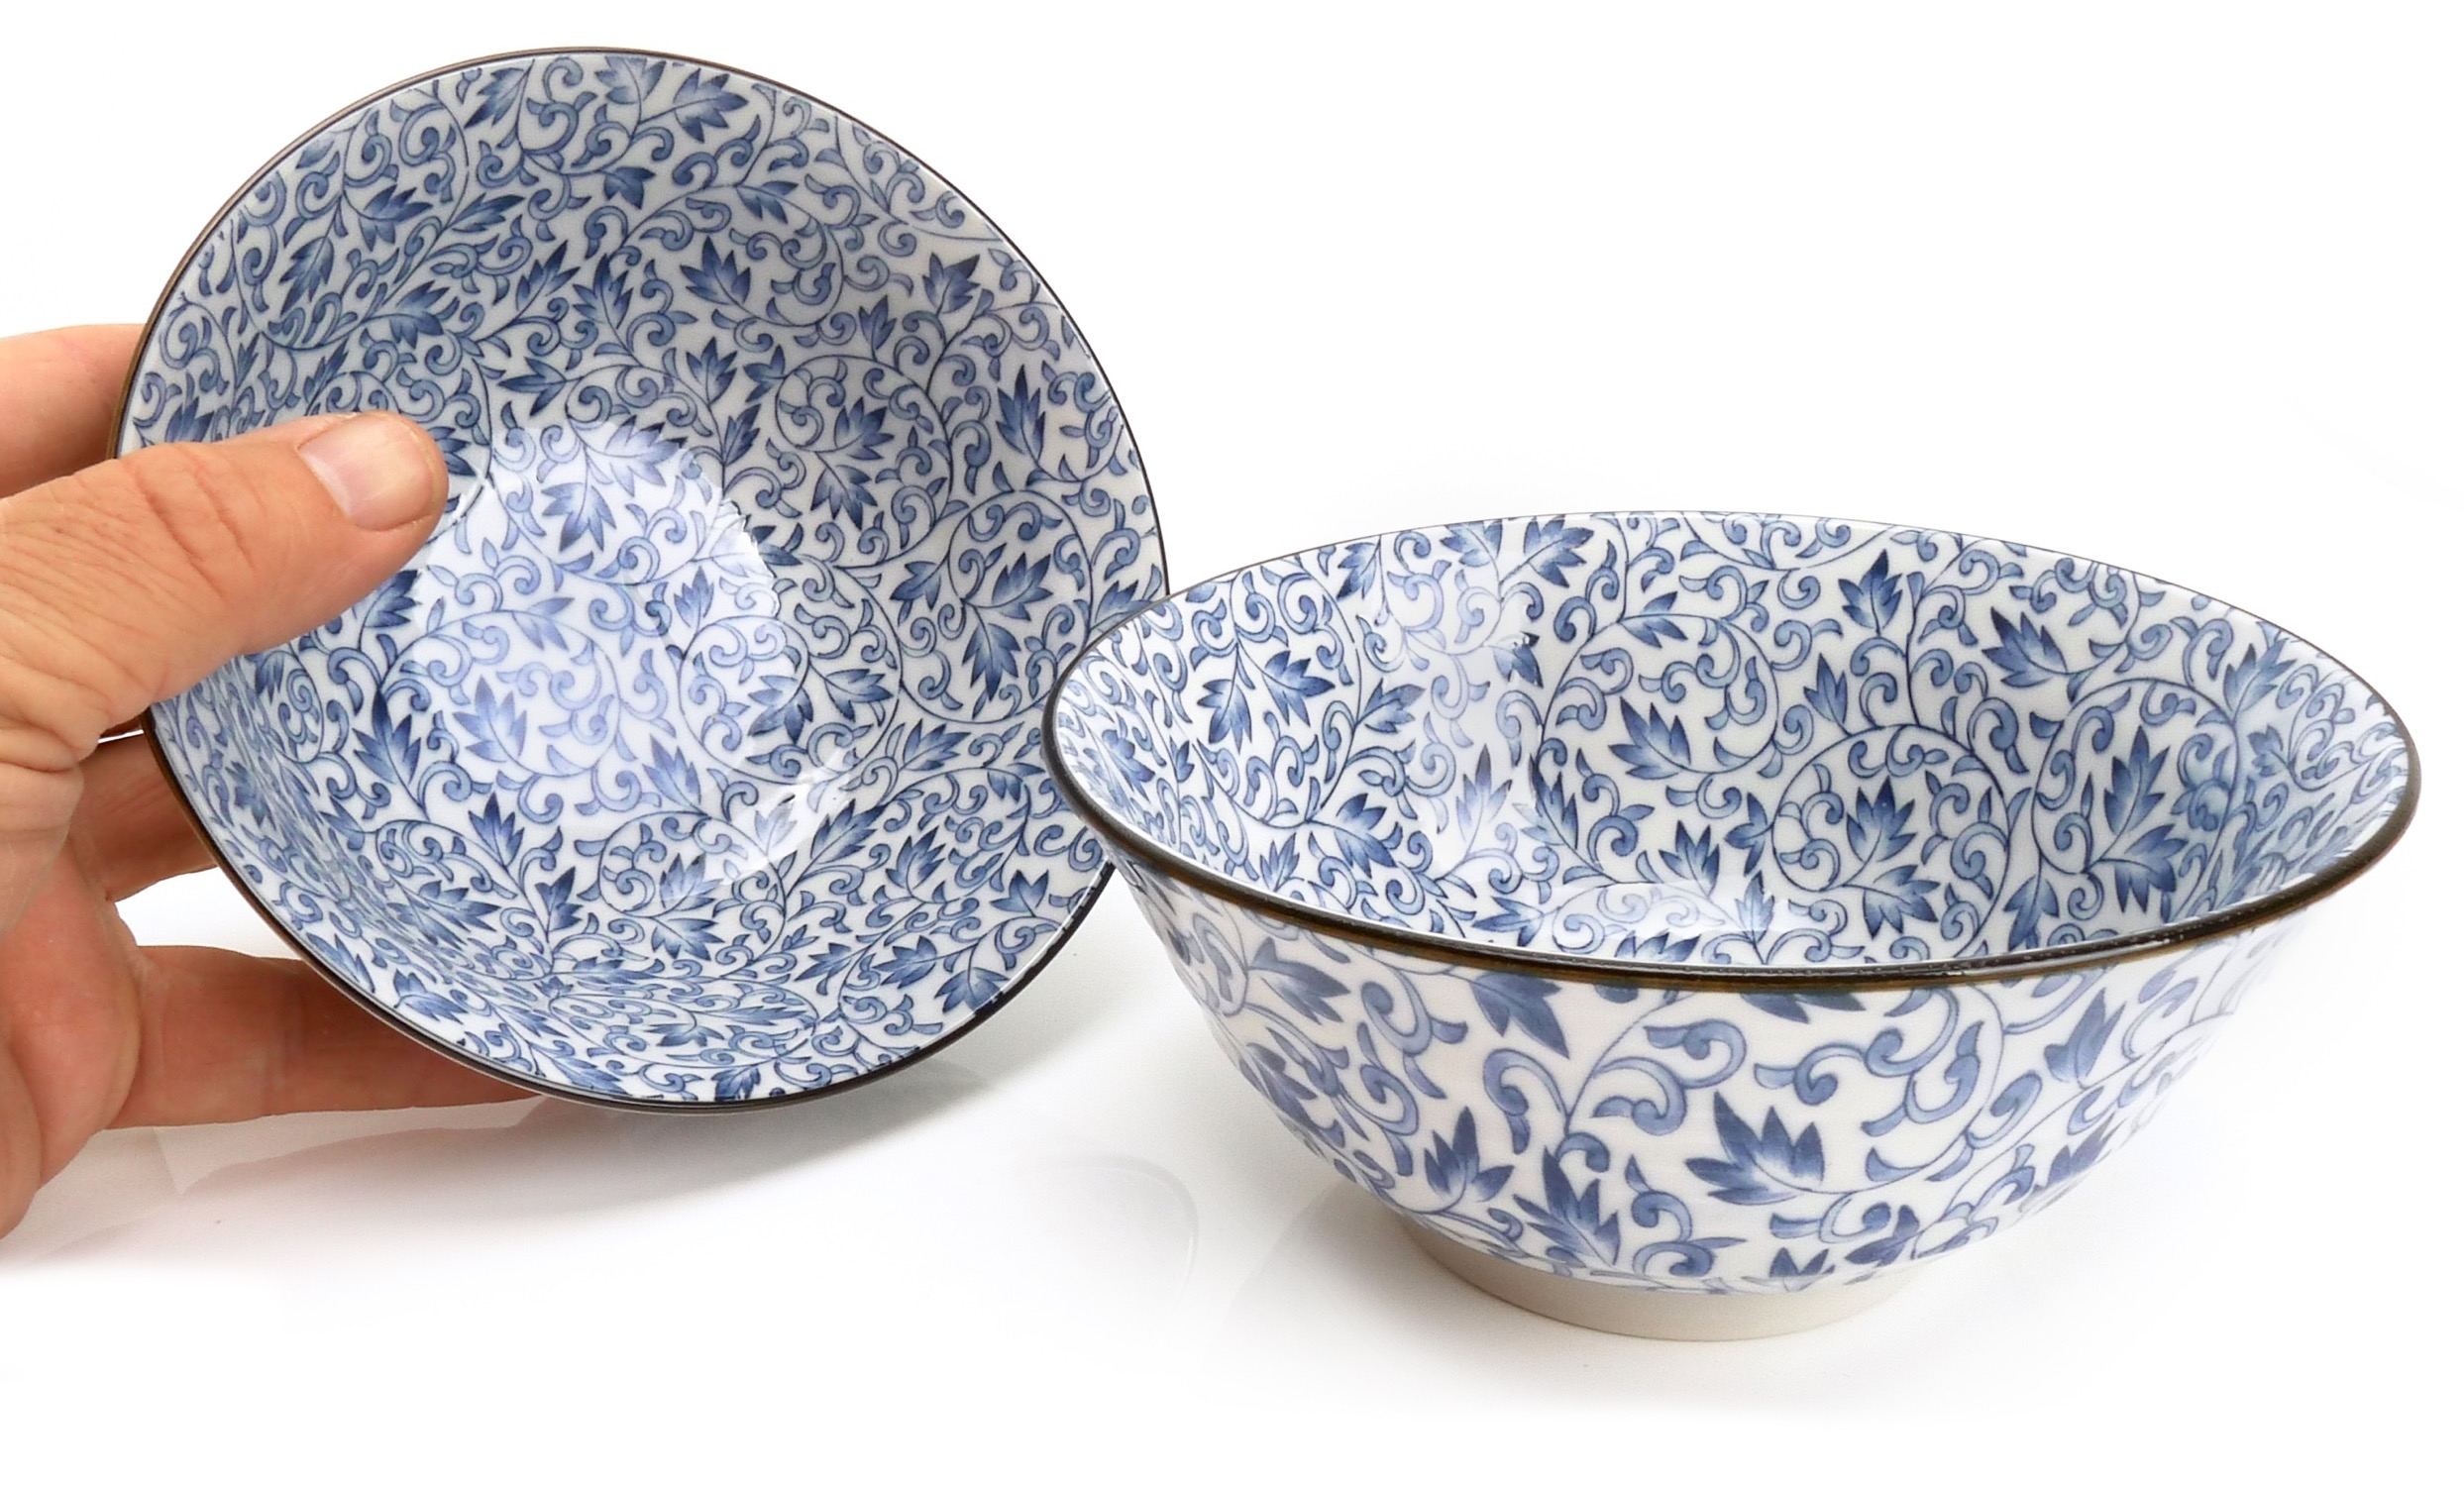 Image of Porcelain Bowls, Blue Ivy, 4.75-Inch, Set Of Two